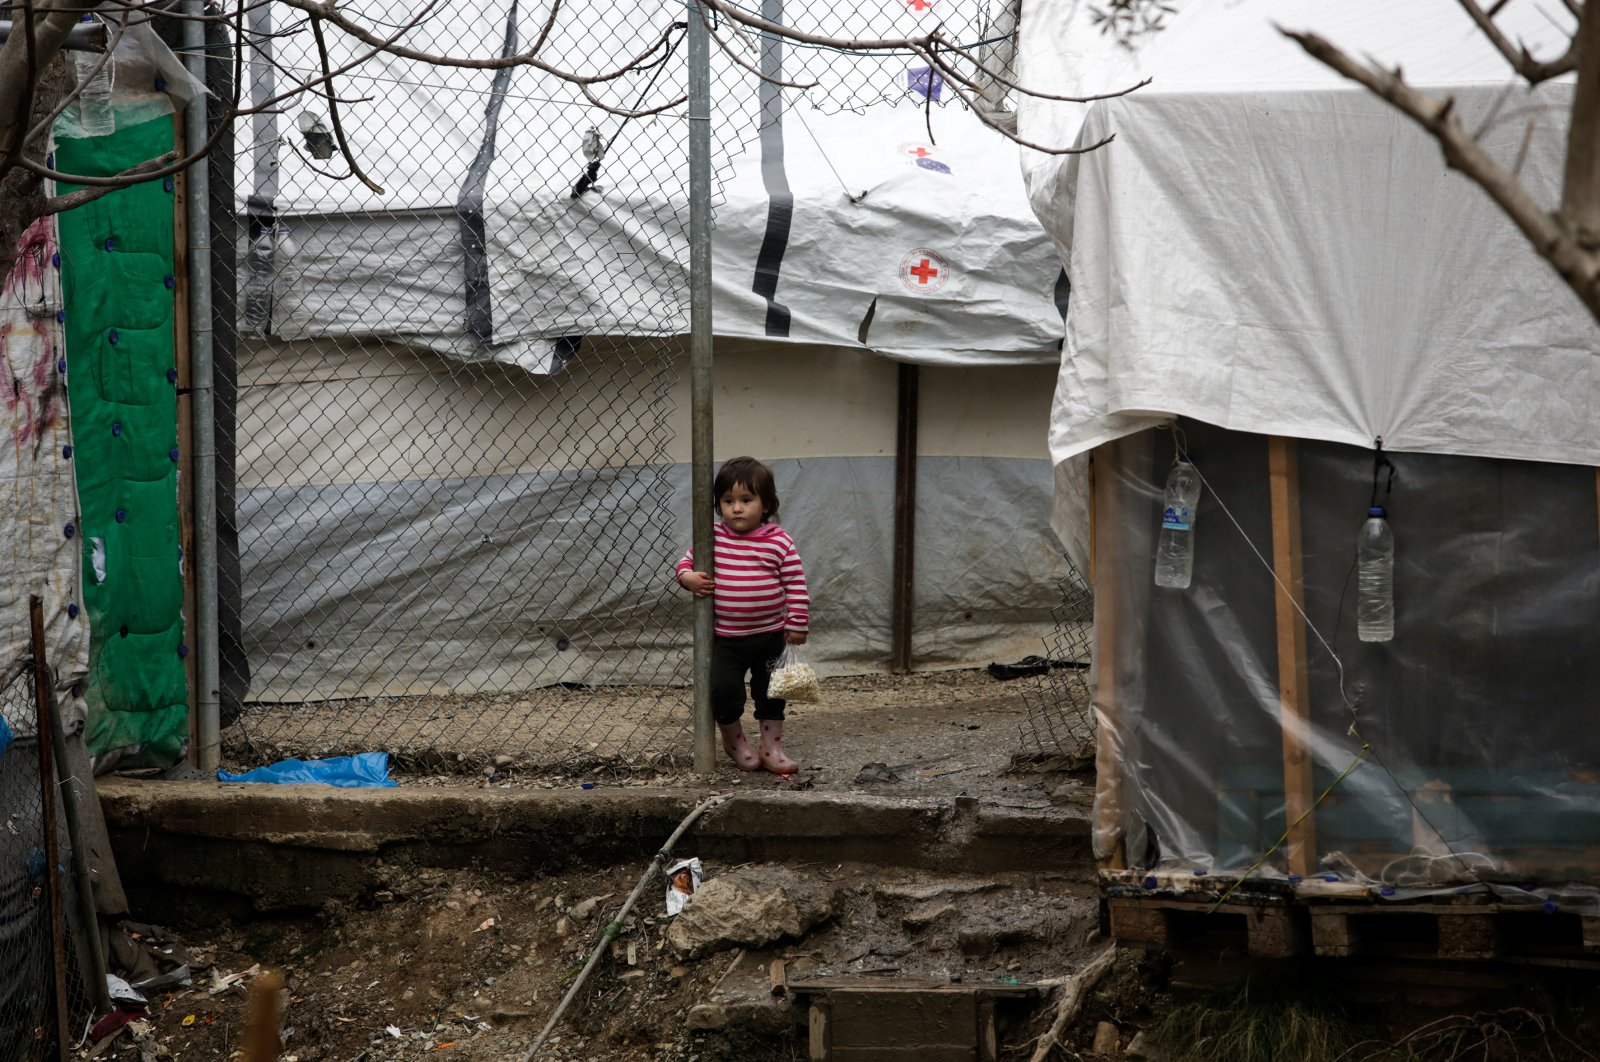 A girl stands among makeshift shelters at a camp for refugees and migrants next to the Moria camp, on the island of Lesbos, Greece, March 9, 2020. (Reuters Photo)